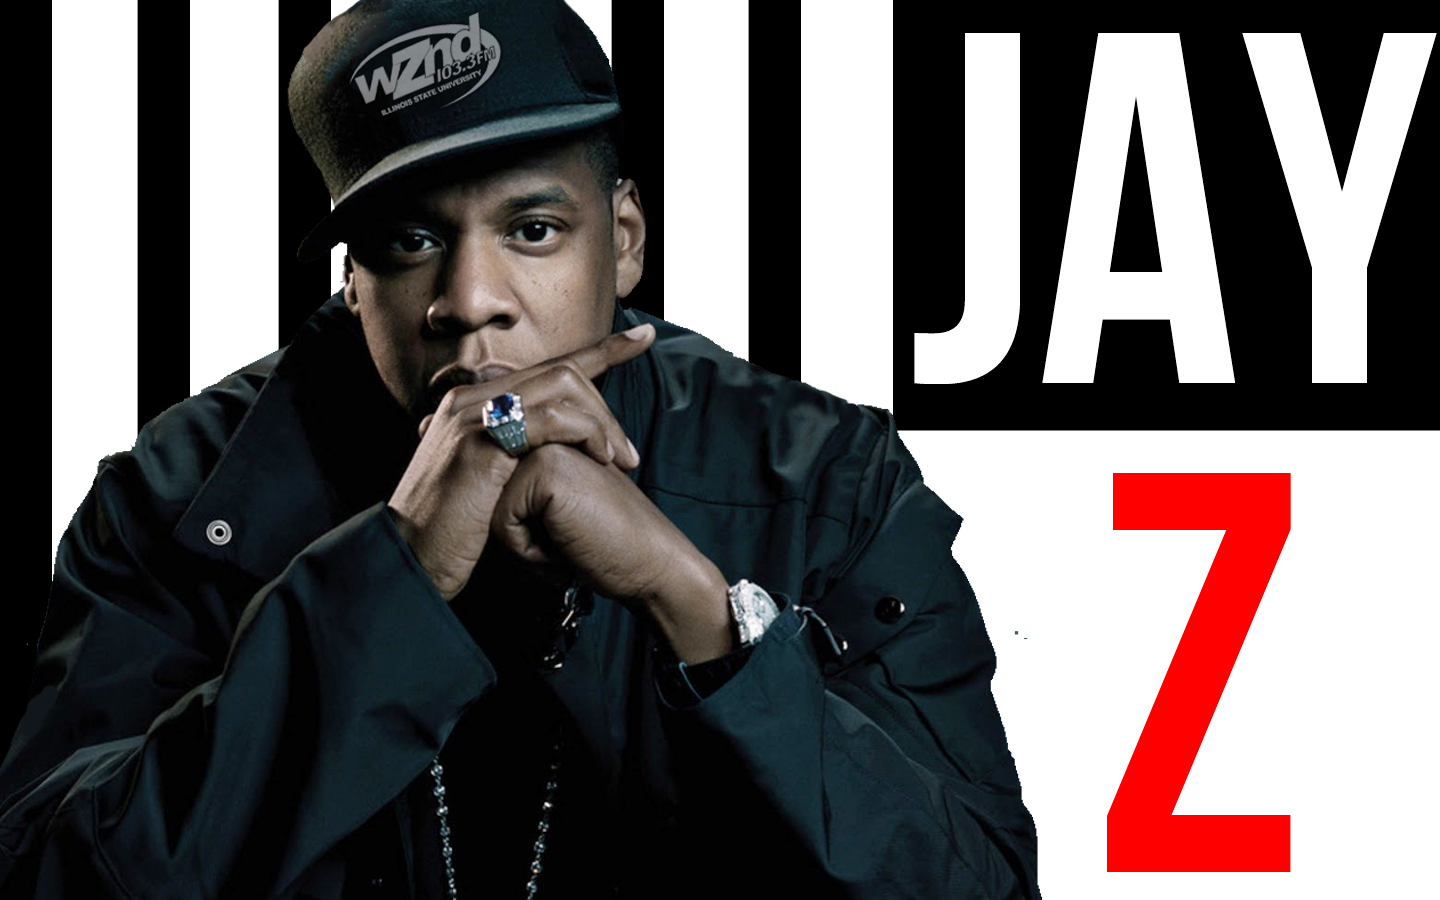 Jay Z Iphone Wallpaper Jay Z Wallpapers Wallpapers High Quality Download Free